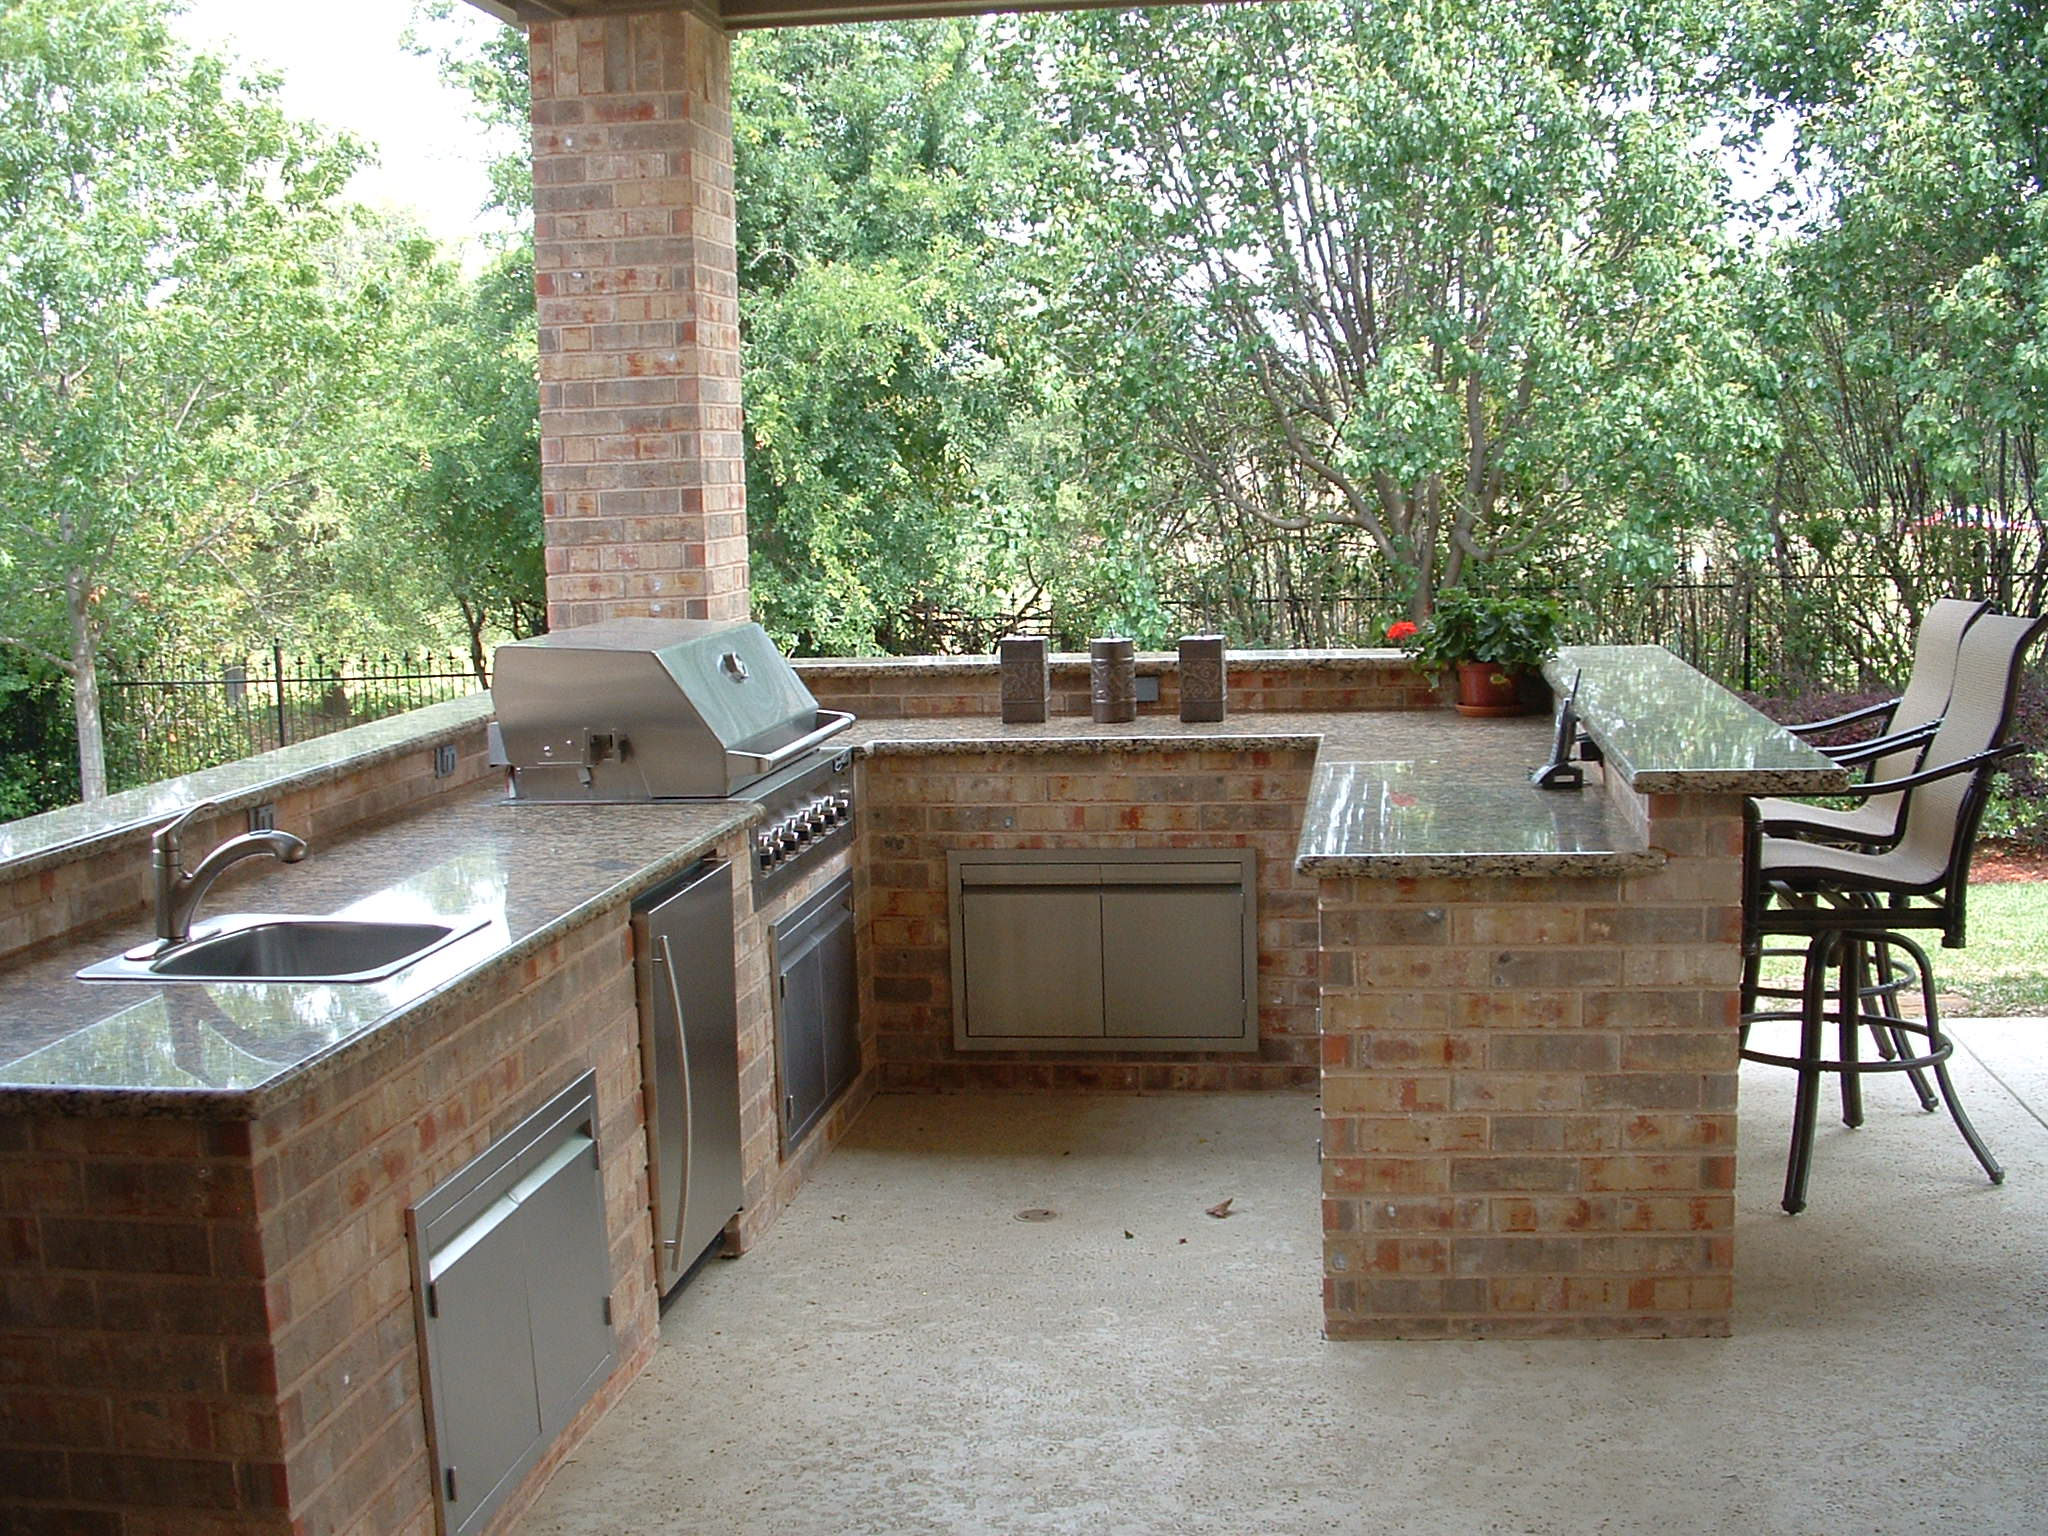 Planning and installing an outdoor kitchen modlich Outdoor kitchen ideas